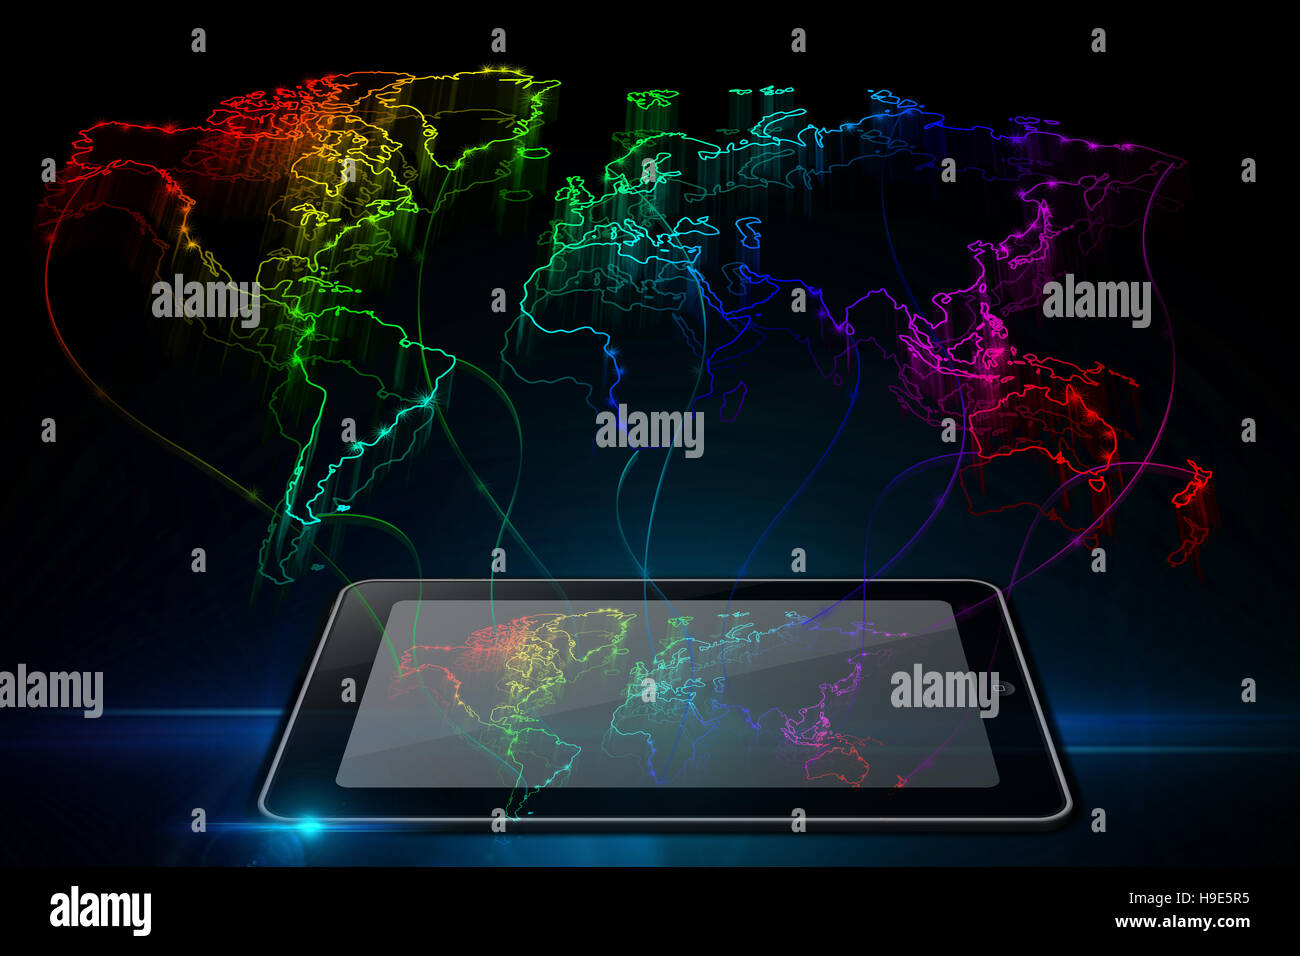 Neon outline map of the world from tablet on black background neon outline map of the world from tablet on black background voltagebd Images